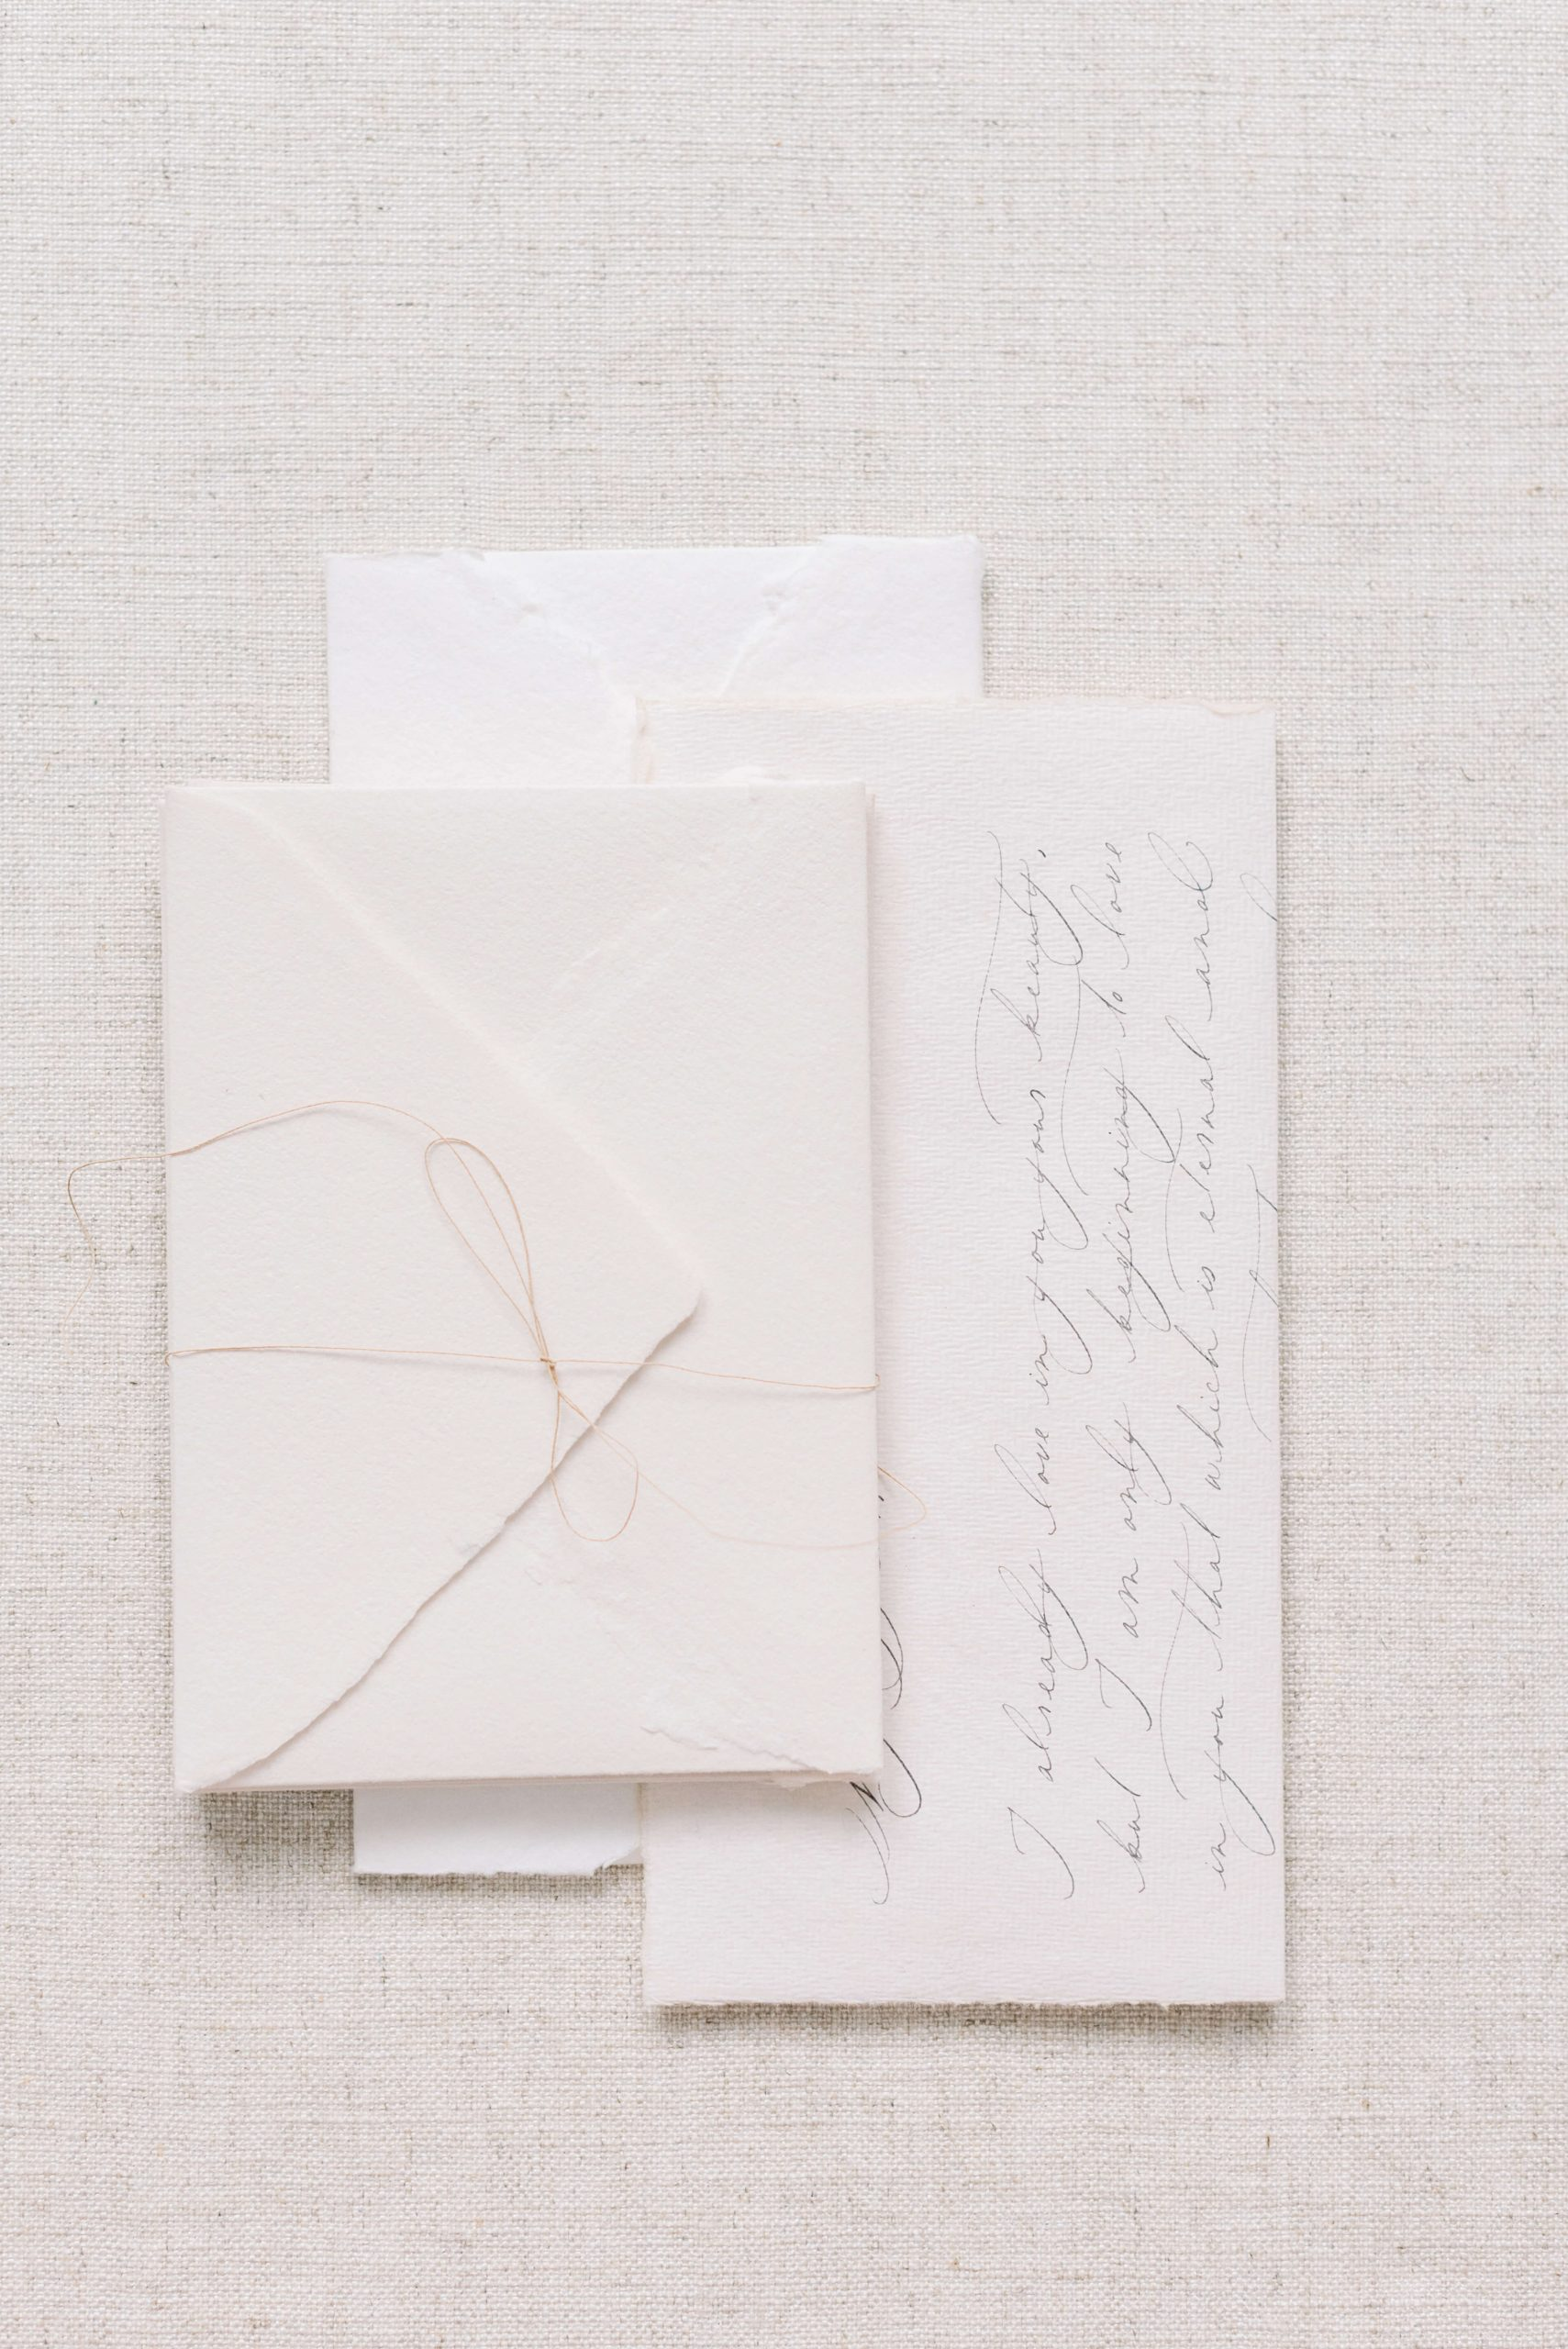 calligraphy on handmade paper with envelope tied with a string, linen styling board, Photo by Cristina Ilao www.cristinailao.com